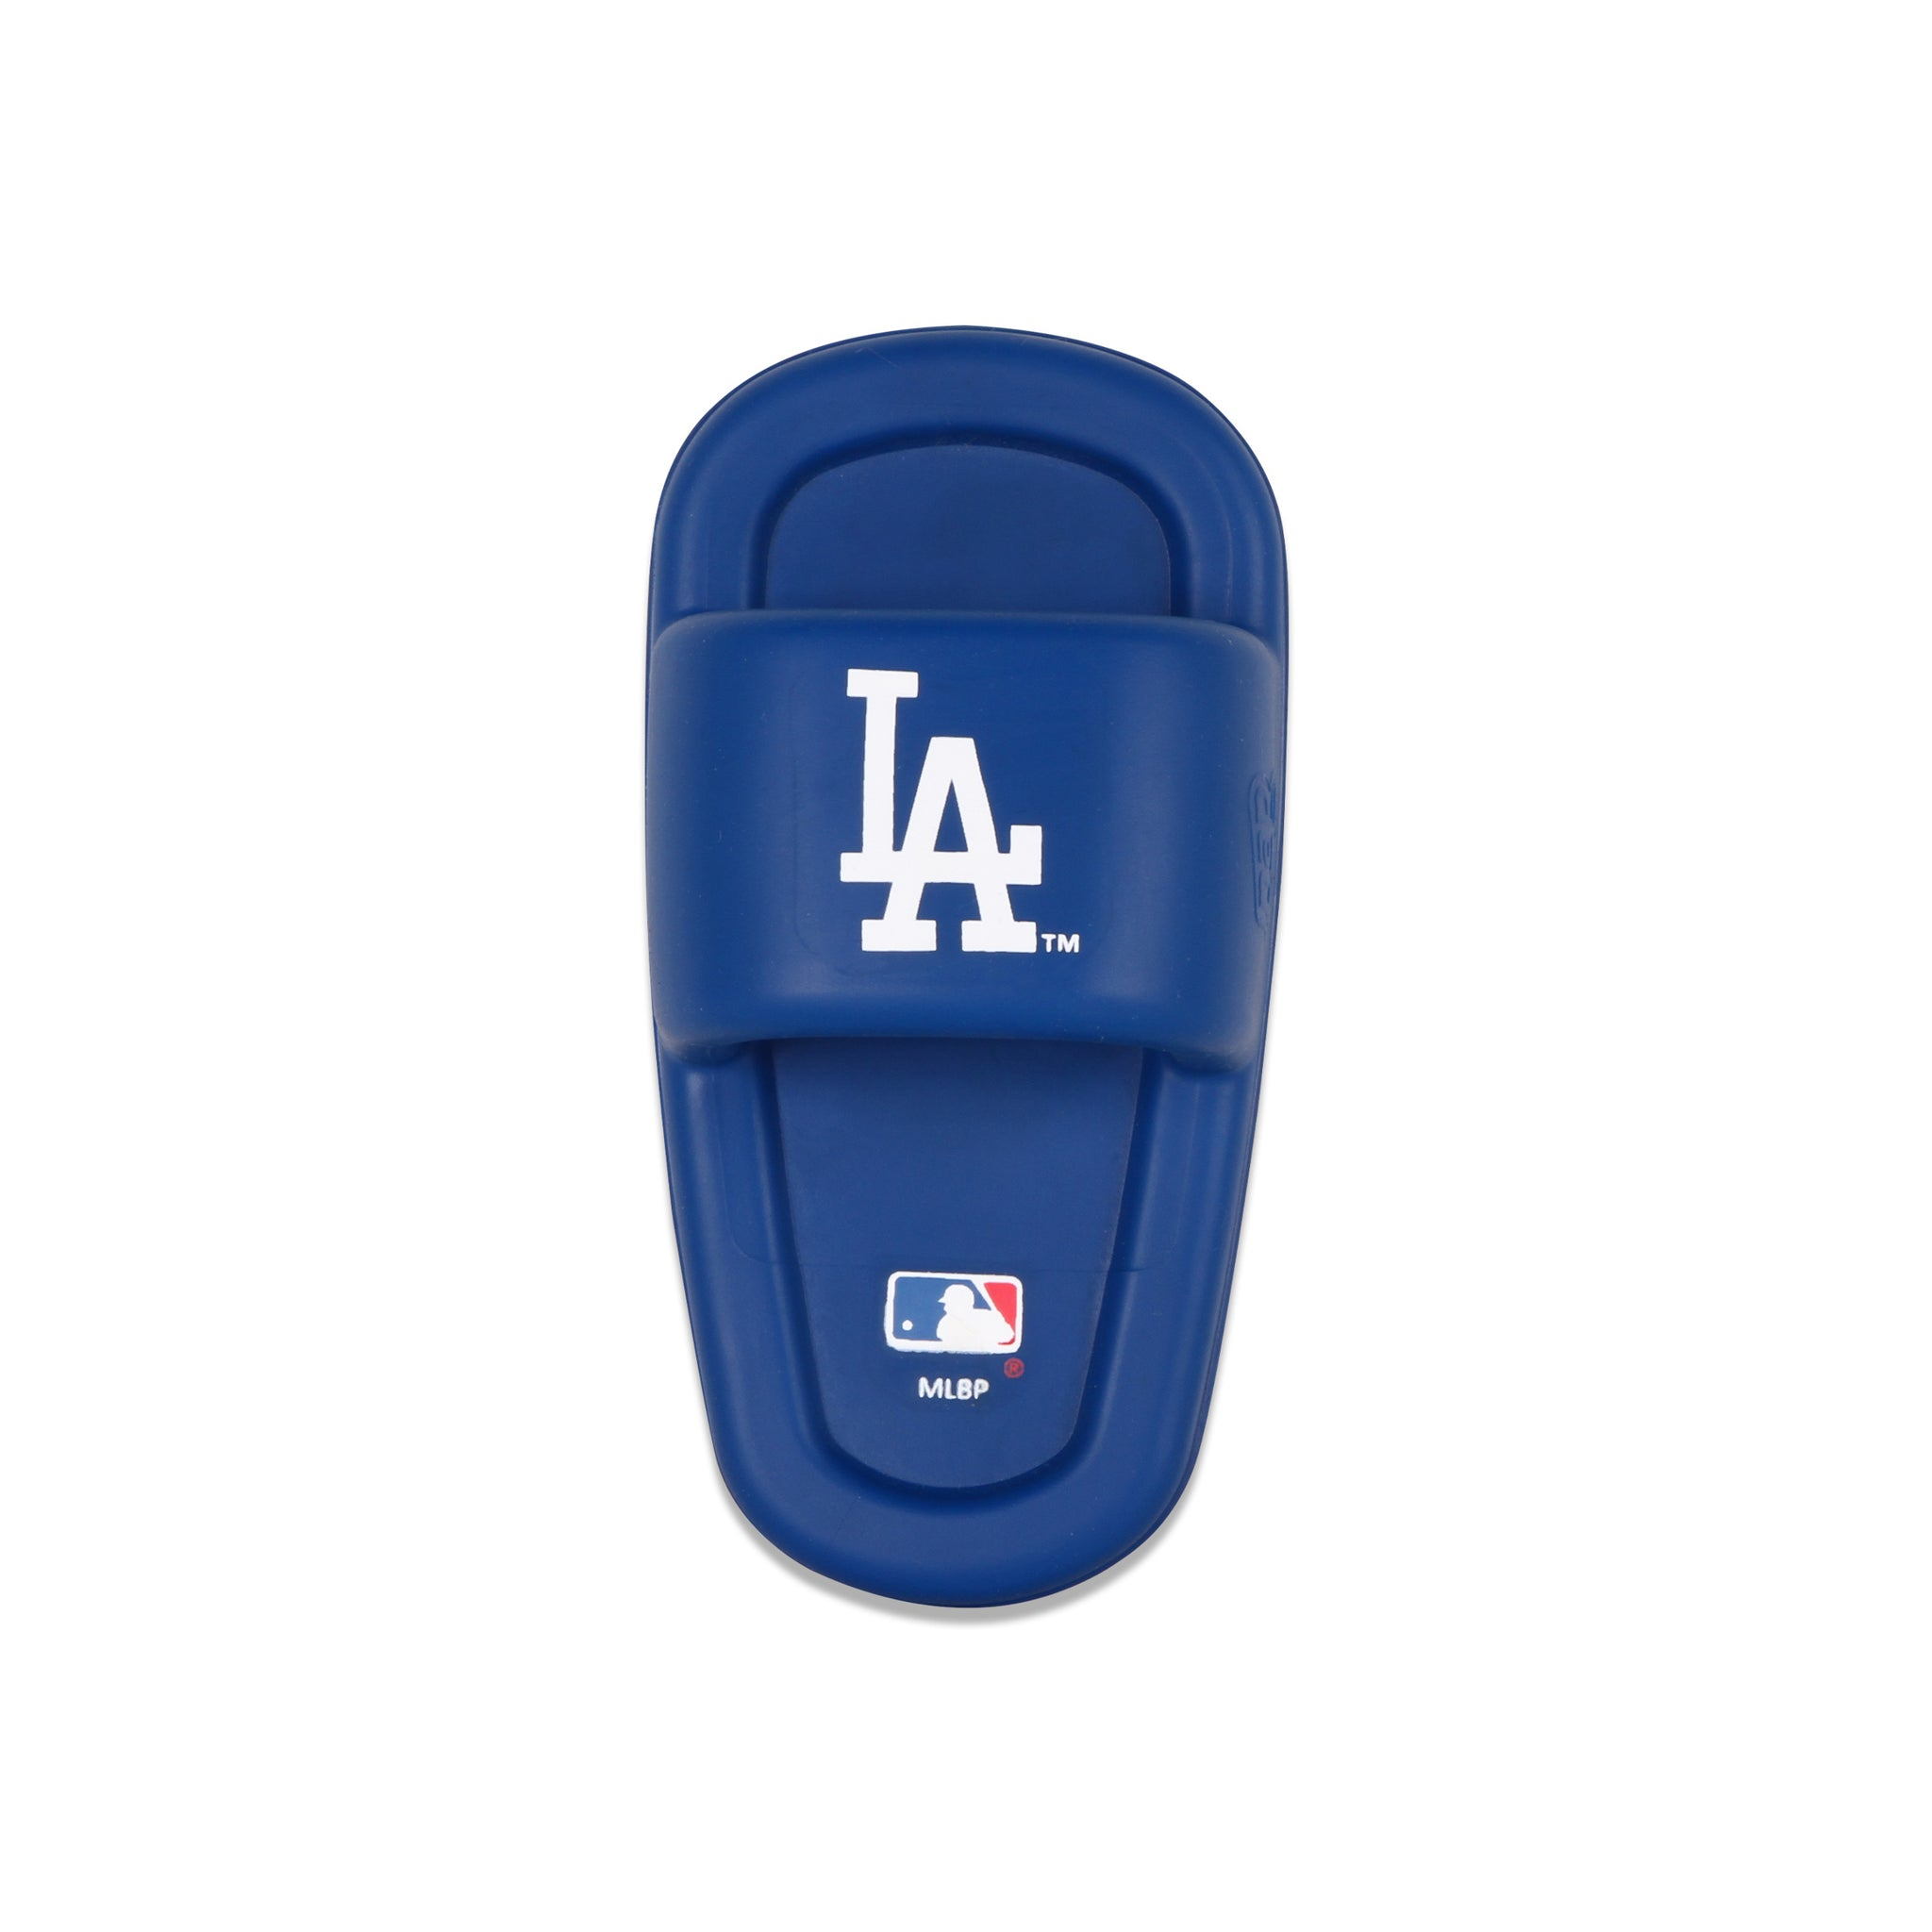 Nap Cap Los Angeles Dodgers Mutt Slide Dog Chew Toy